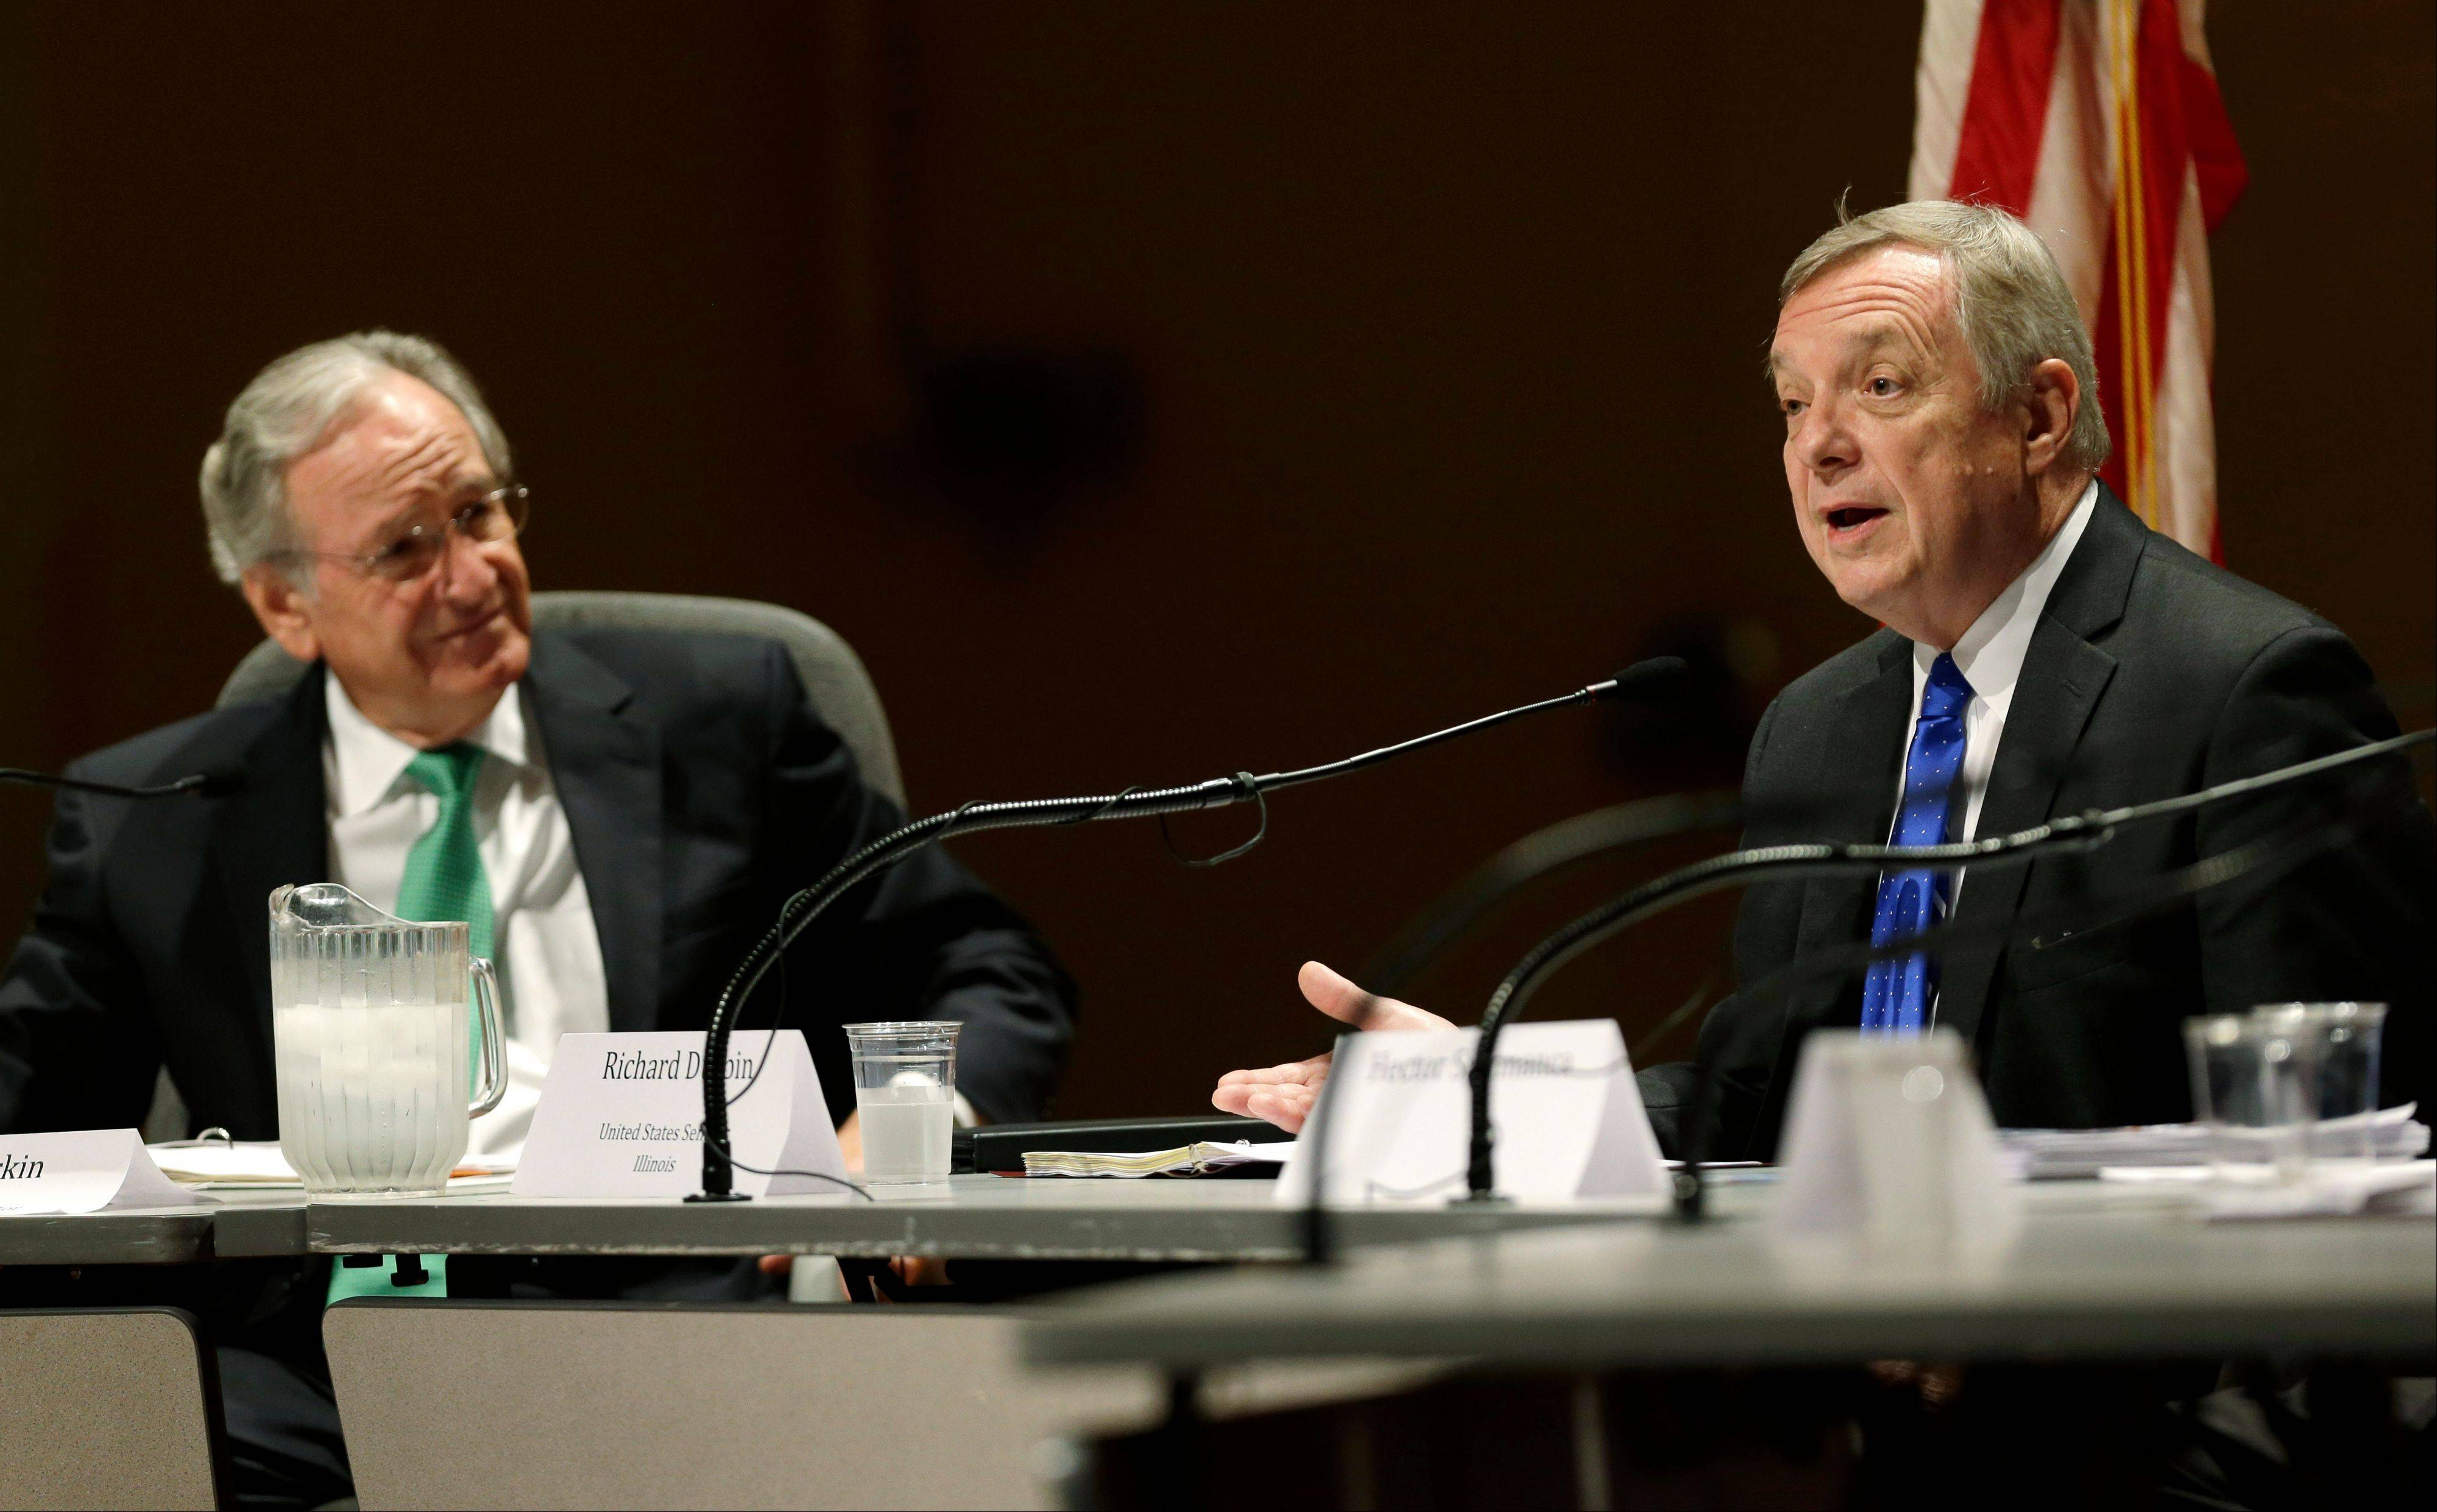 U.S. Sen. Dick Durbin, right, speaks Friday during a forum on immigration. Durbin, of Illinois, the No. 2 Democrat in the Senate, tucked a provision into the 2014 fiscal year defense spending bill that would require the NSA to report to Congress � within 90 days after the legislation becomes law � on the precise number of phone records collected.